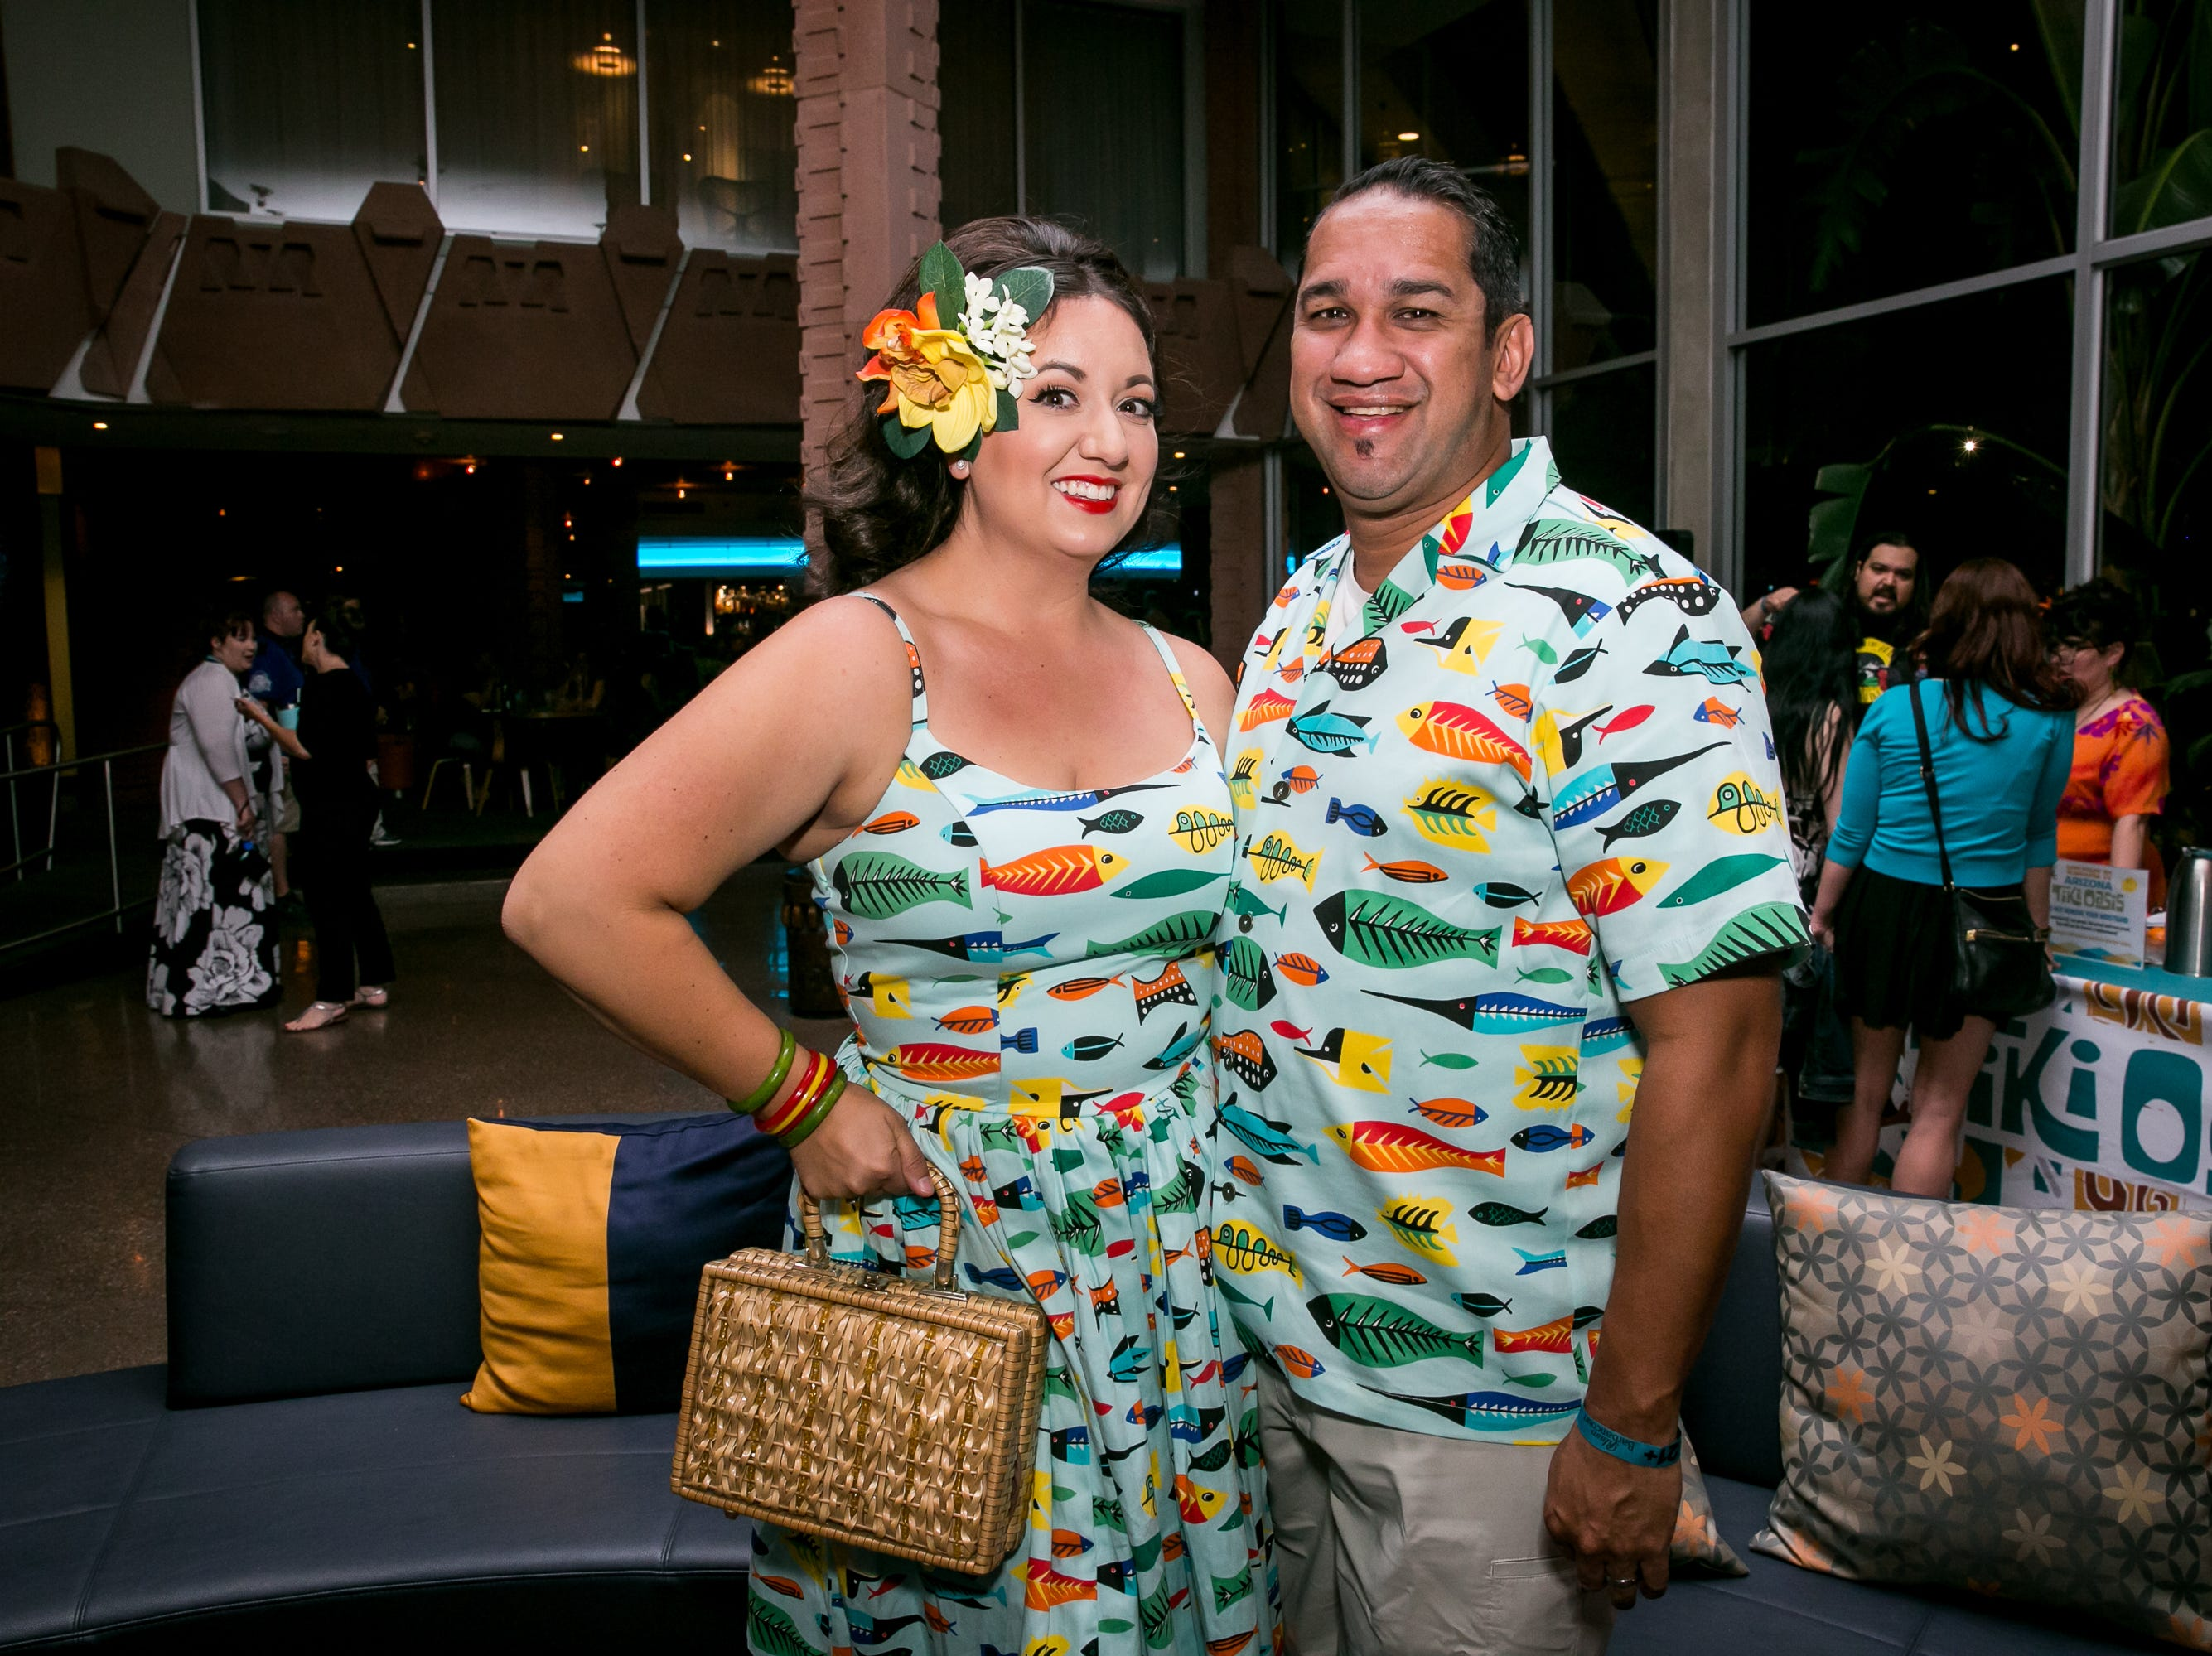 This couple looked phenomenal during Arizona Tiki Oasis at Hotel Valley Ho in Scottsdale on April 12, 2019.